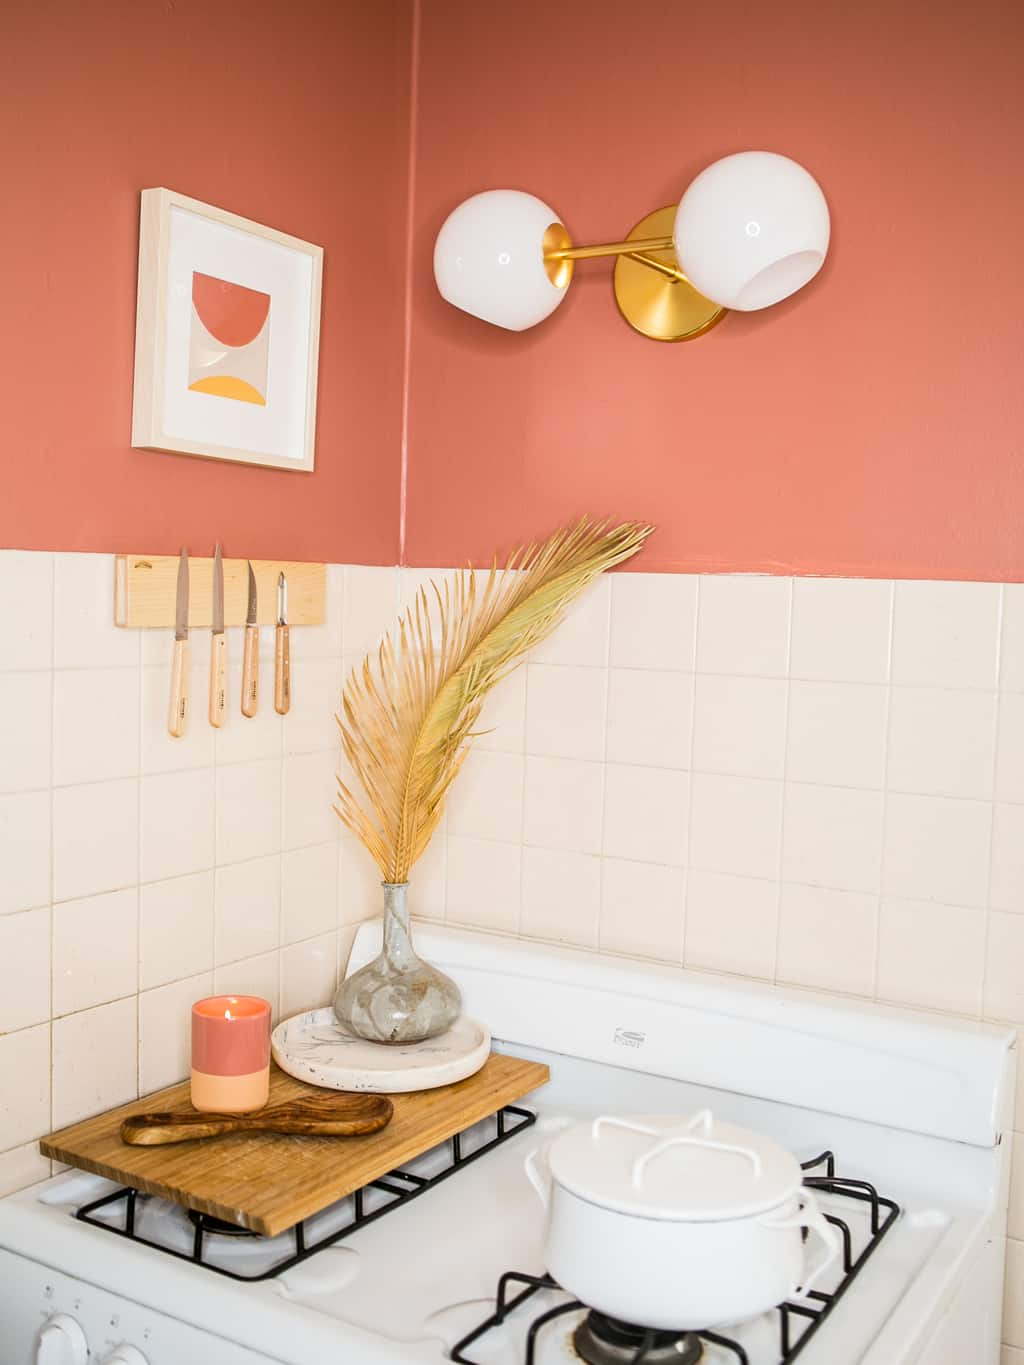 Newly finished stove corner with coral walls and a knife magnet.